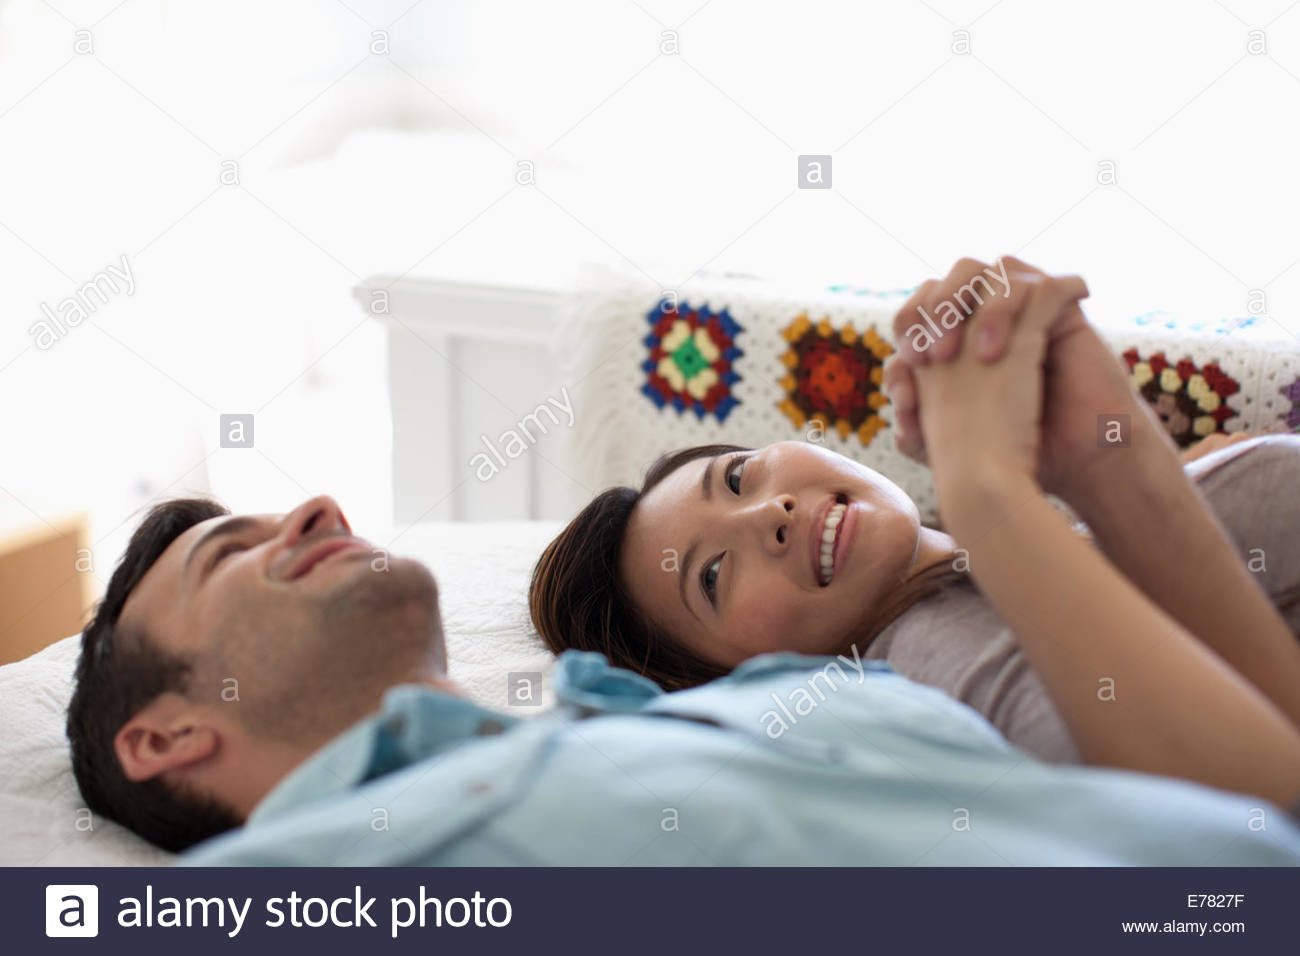 Smiling couple holding hands on bed - Stock Image